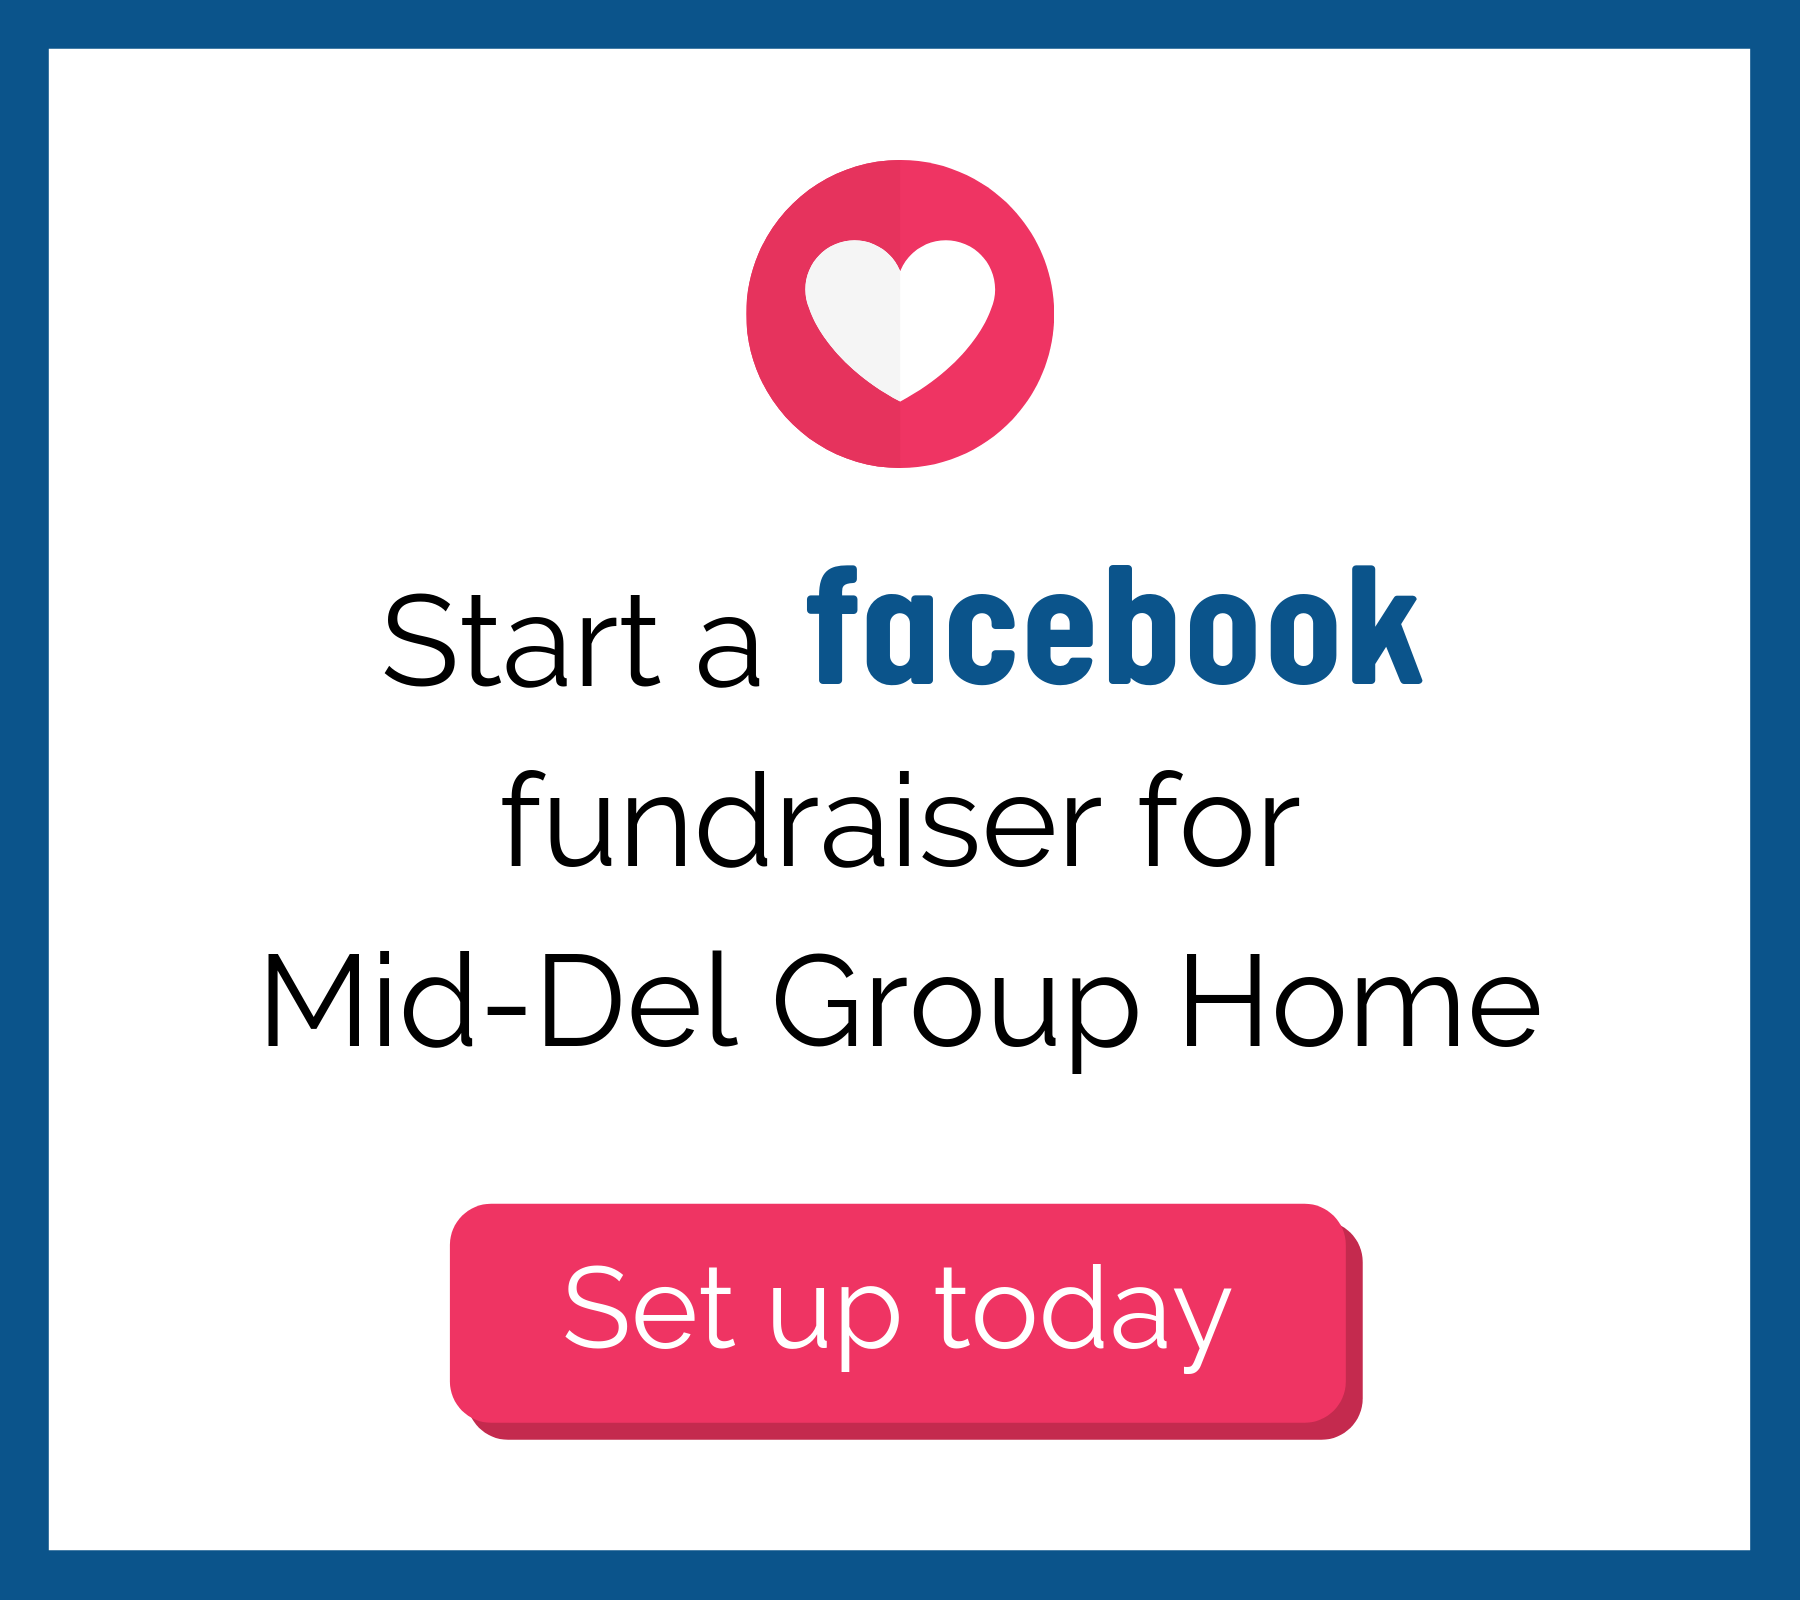 Start a Facebook fundraiser for Mid-Del Group Home (1).png